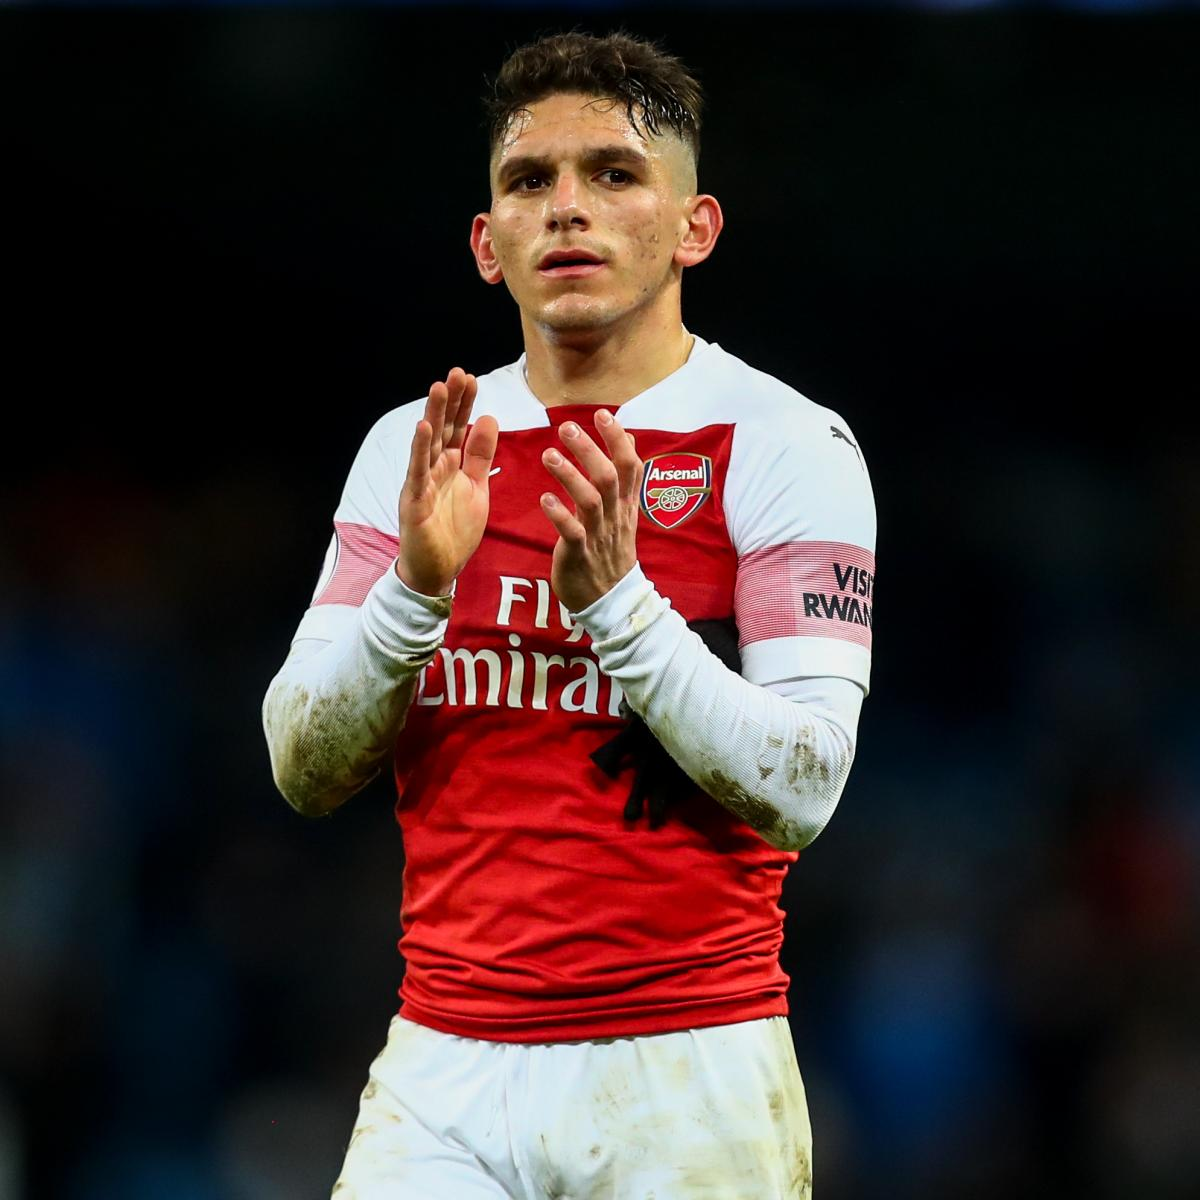 Reports Arsenal Were Ready To Sign Lucas: Lucas Torreira Says 'Big Club' Arsenal Focused On Reaching